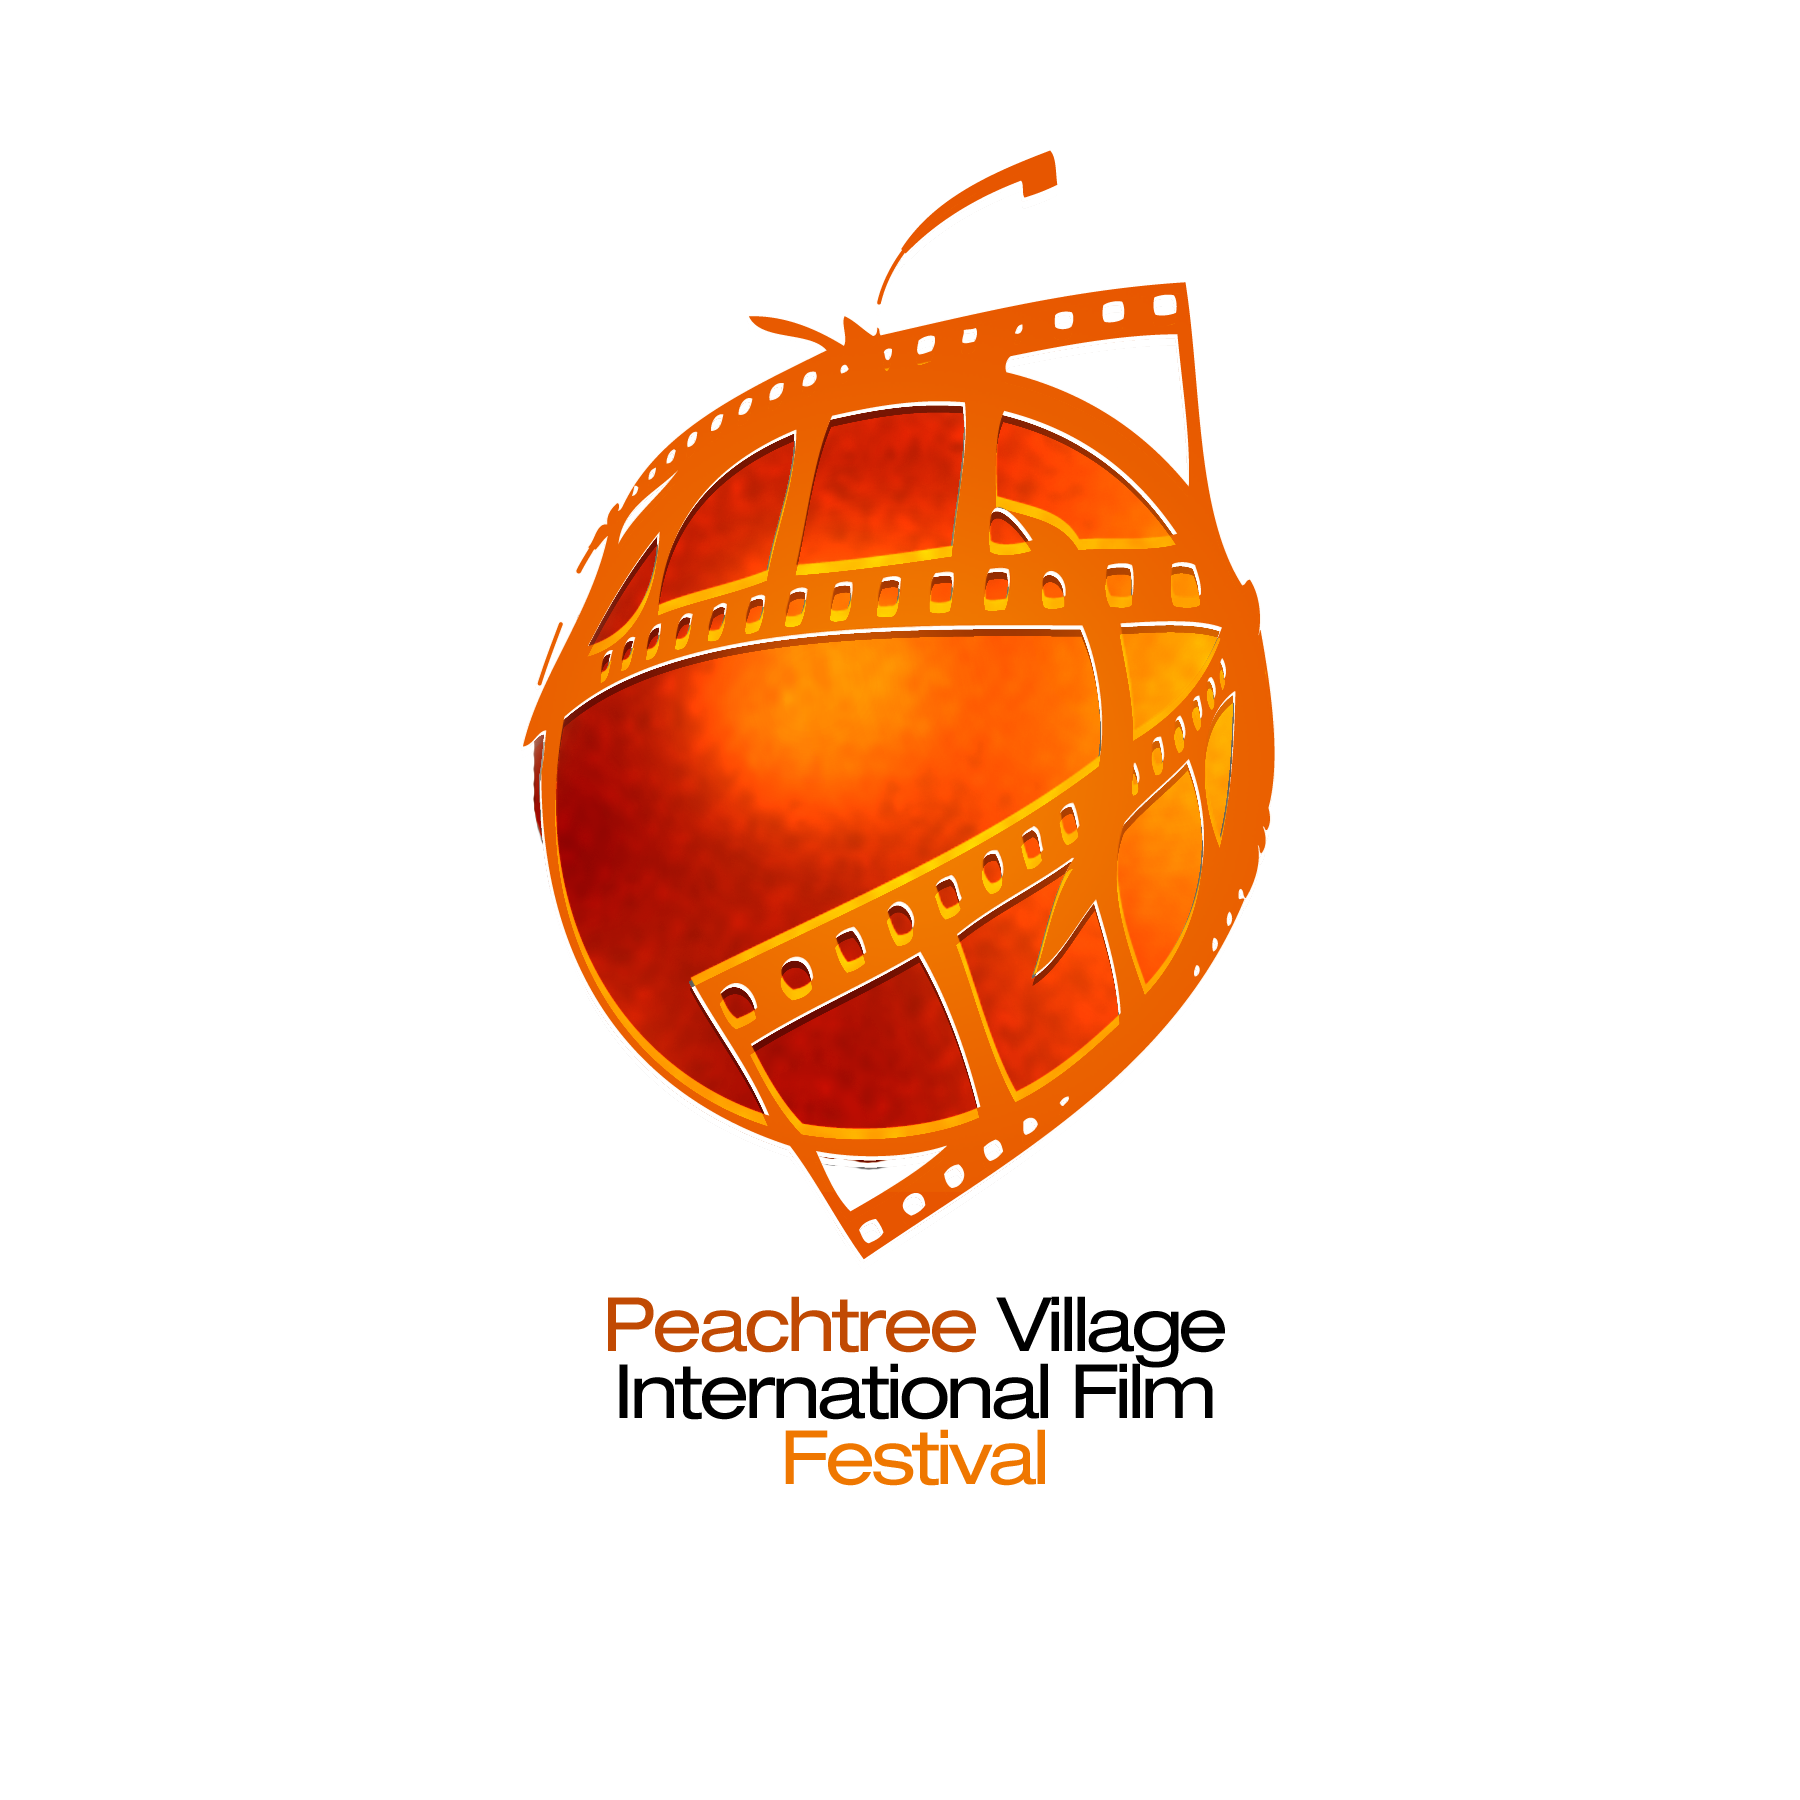 Peachtree Village Int. FF - Screening locally in Georgia on October 26th-29th, 2017,from 4:30 - 5:00 PM at the Terminus Building in Atlanta, located at 330 Marietta St NW, Atlanta, GA 30313.